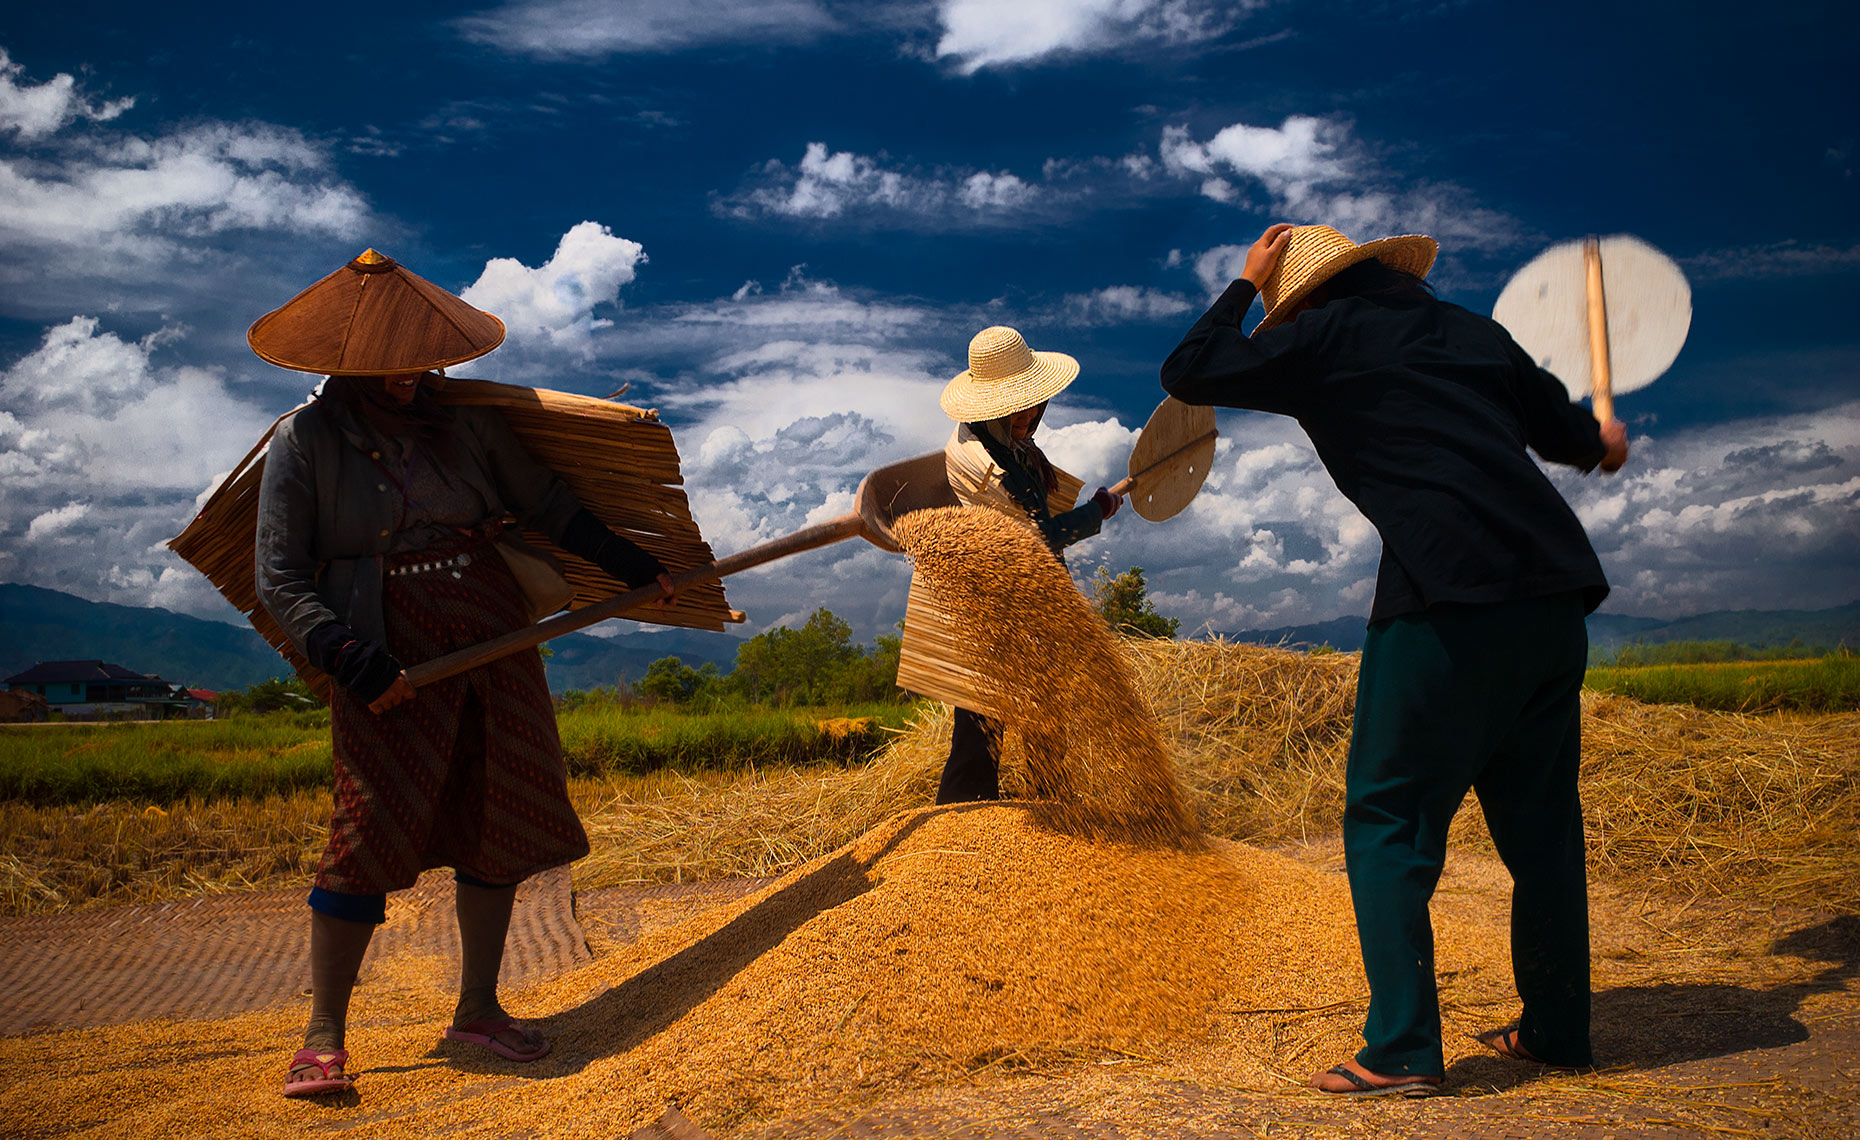 RIce Field Workers, Keng Tung, Burma